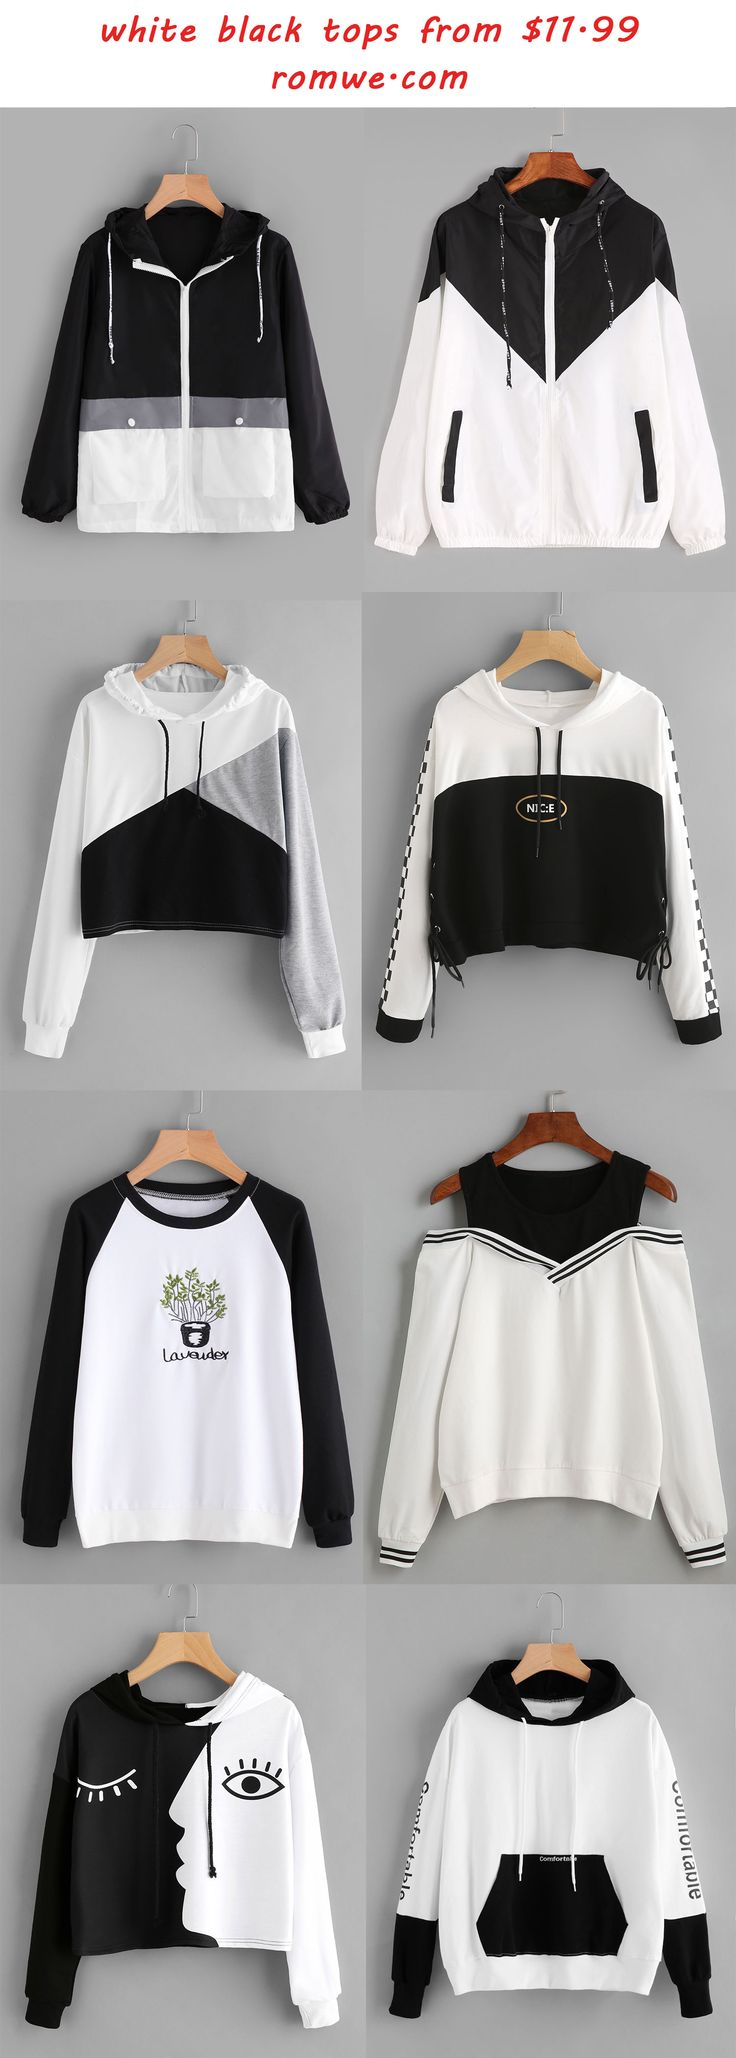 white & black tops - romwe.com